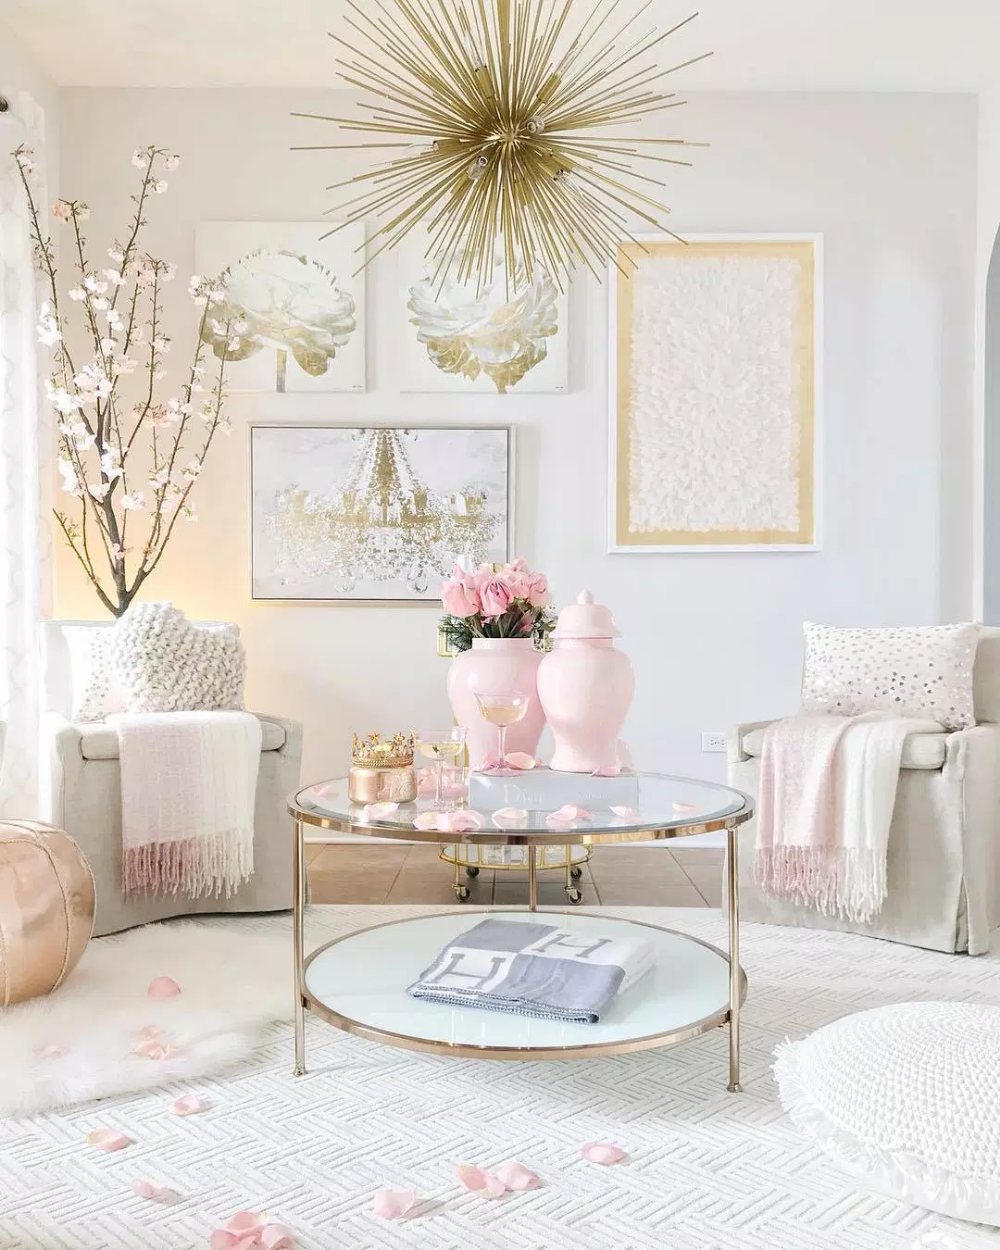 Top 11 Incredible Cozy And Rustic Chic Living Room For: Glam Blush + Gold Spring Amazing Home Tour